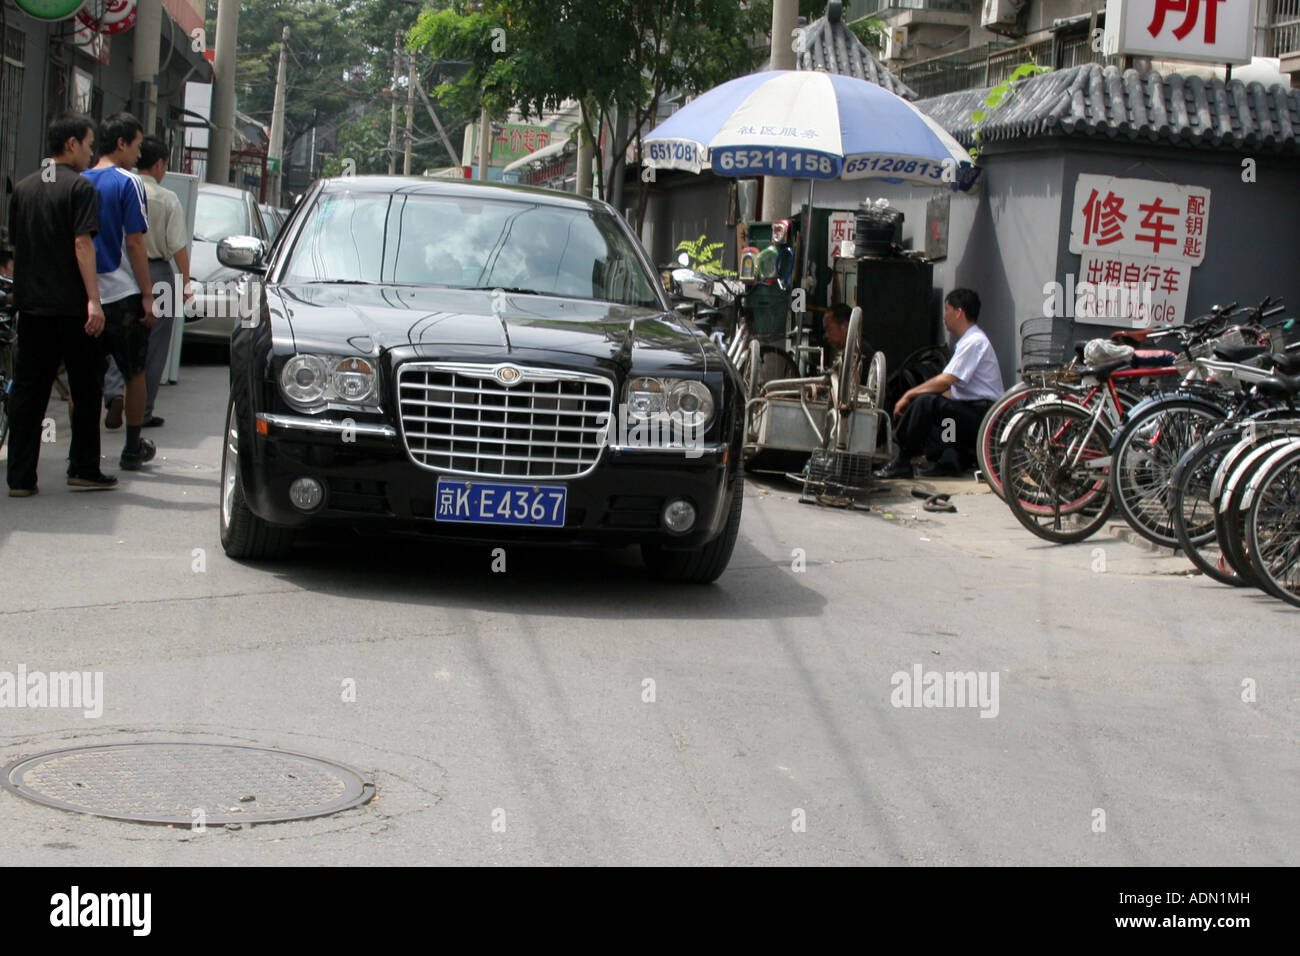 luxury car in the narrow street of Hutong Beijing China August 2007 Stock Photo